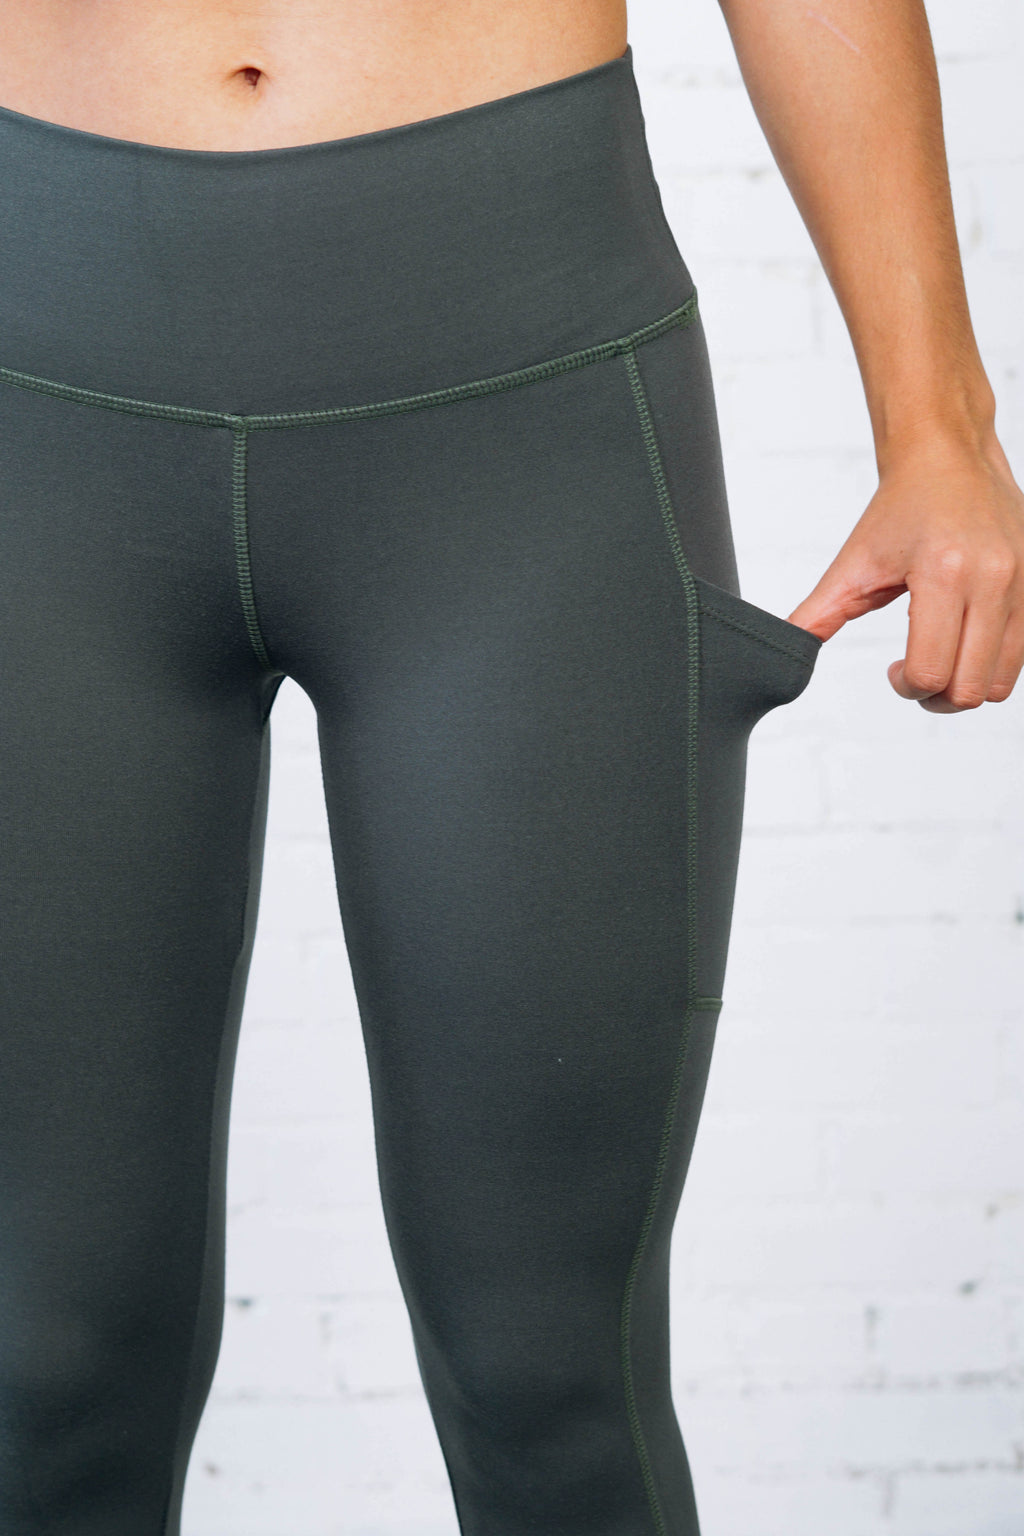 fusion tight (3 colors)